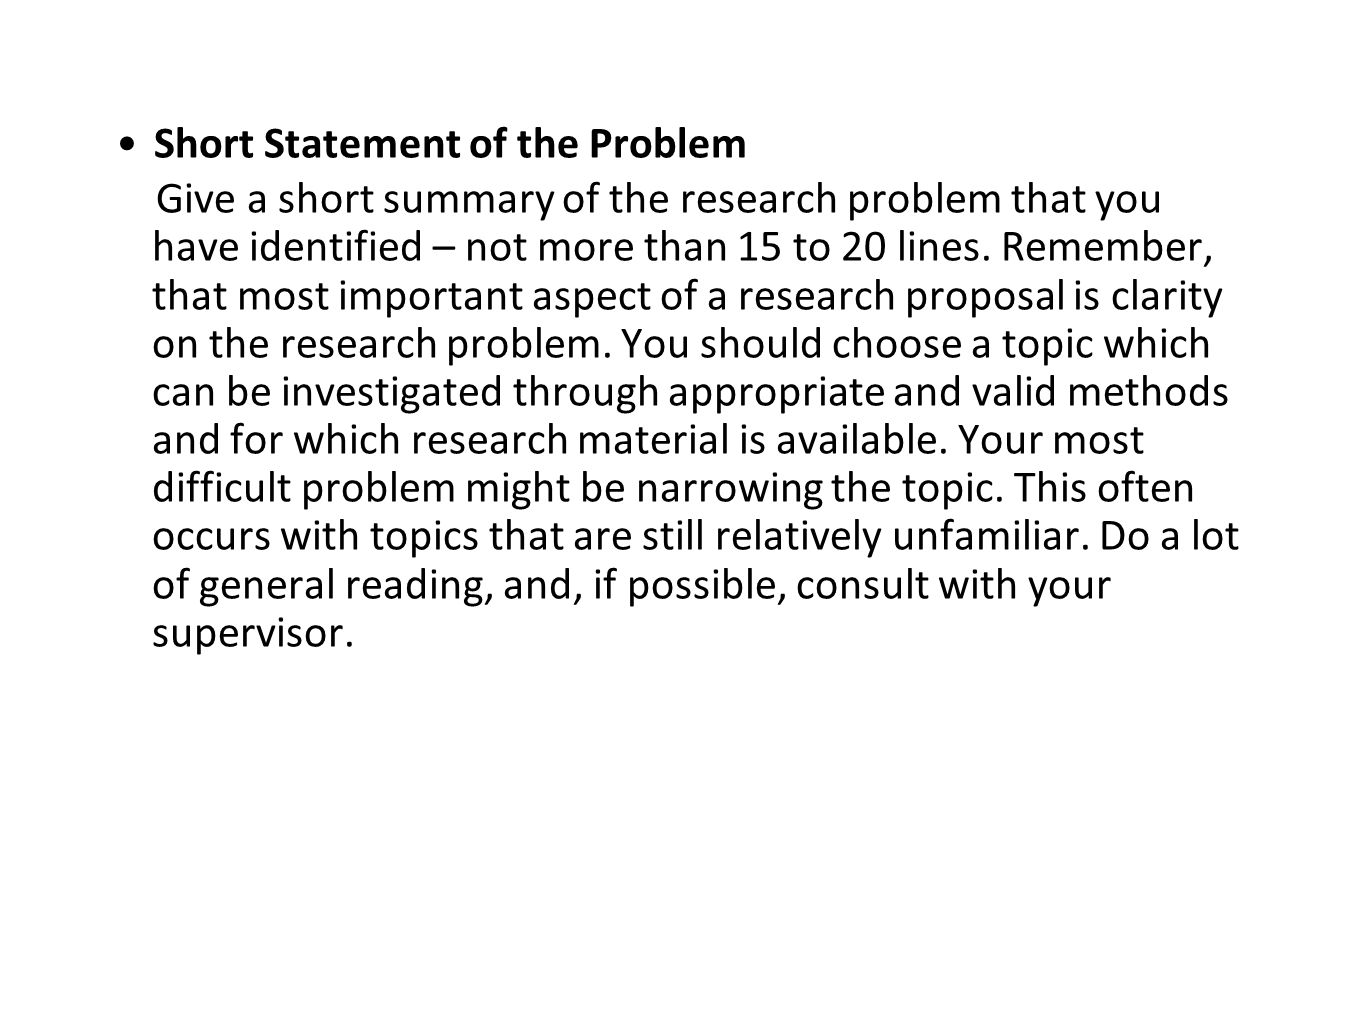 Short Statement of the Problem